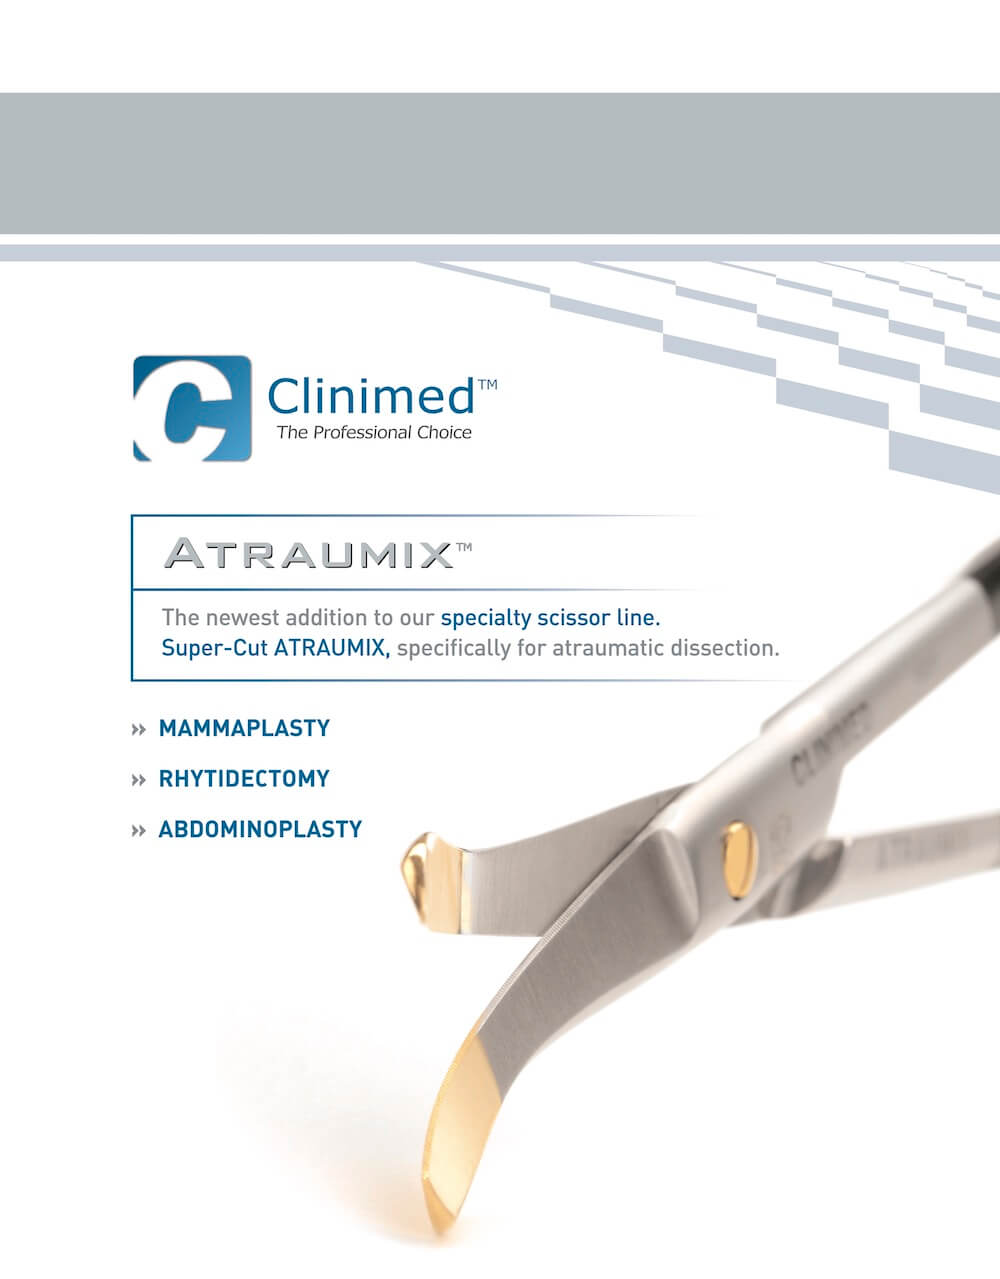 CLINIMED_Atraumix-scissors-Brochure